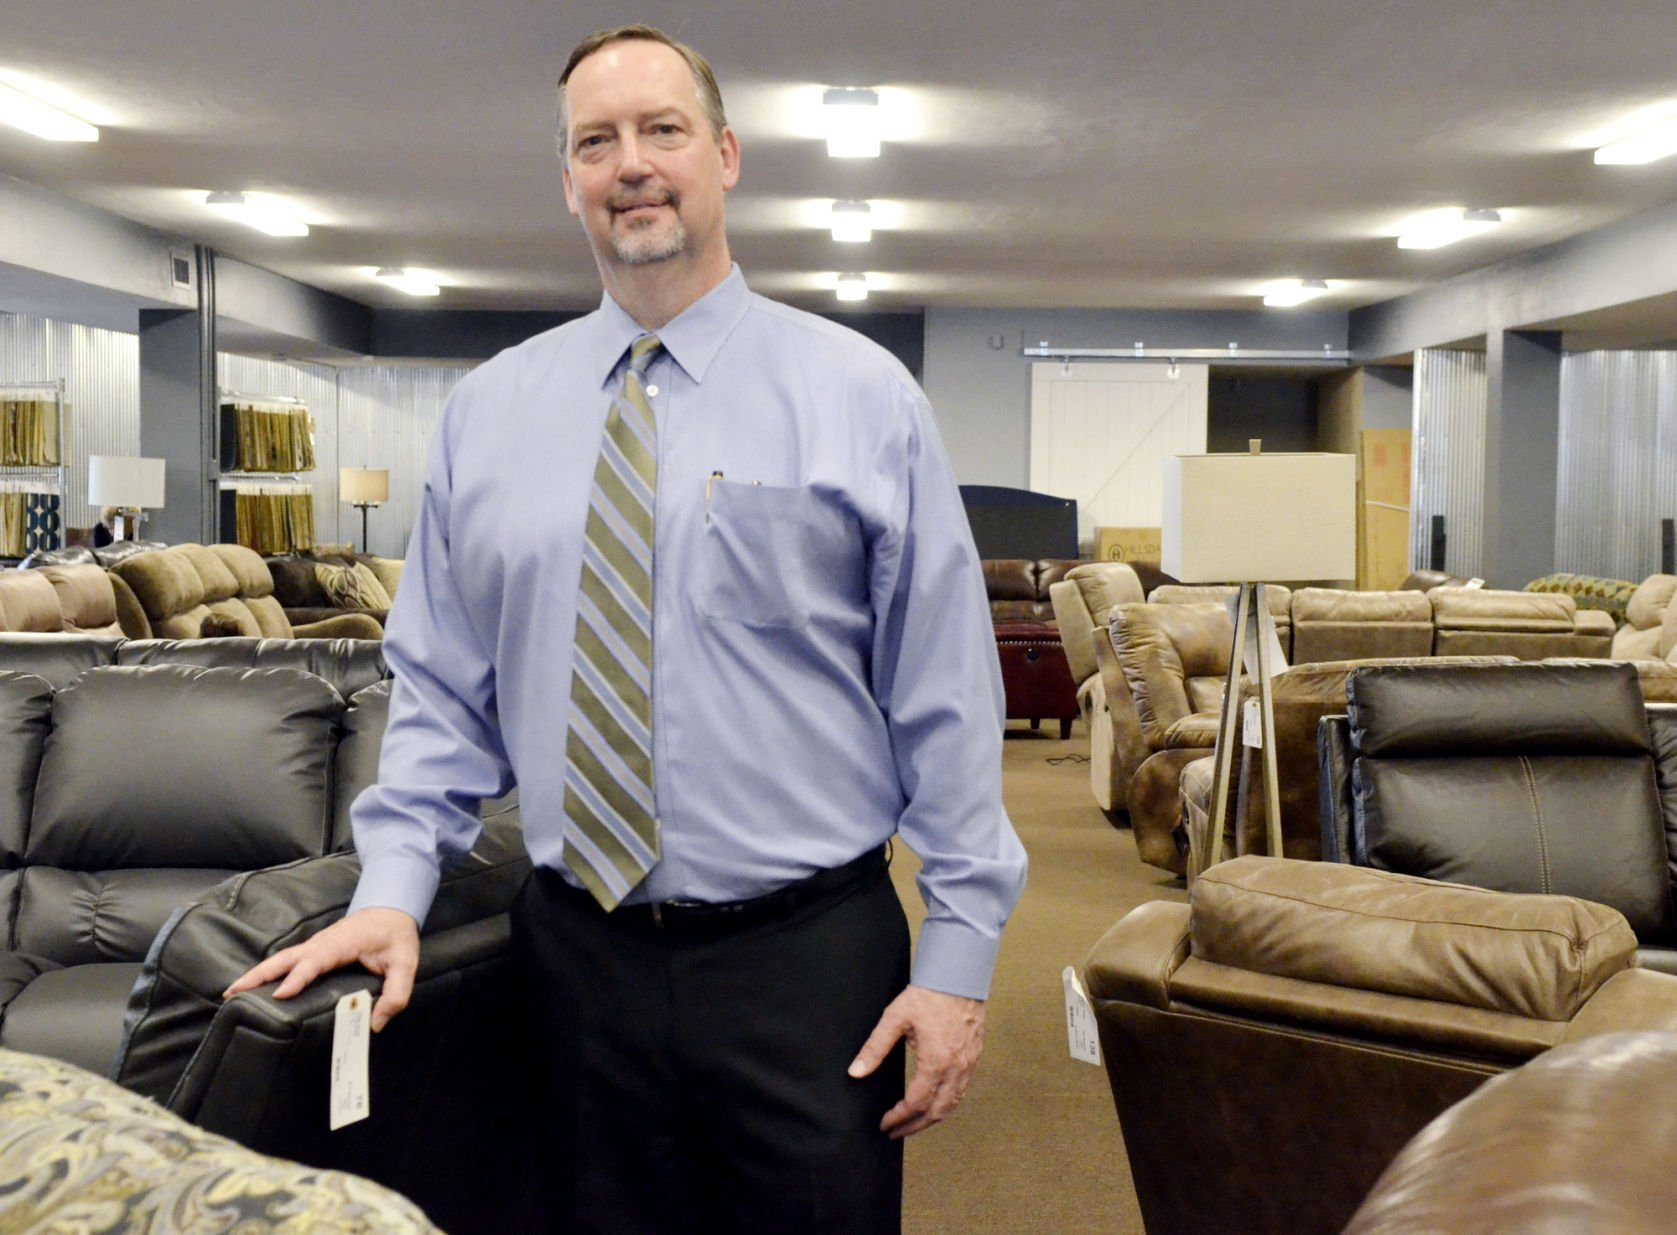 Owner Tim Deets Opened His New Downtown Furniture Store At 2422 13th St.  Last Week Following A Six Month Remodeling Project To The Nearly  25,000 Square Foot ...